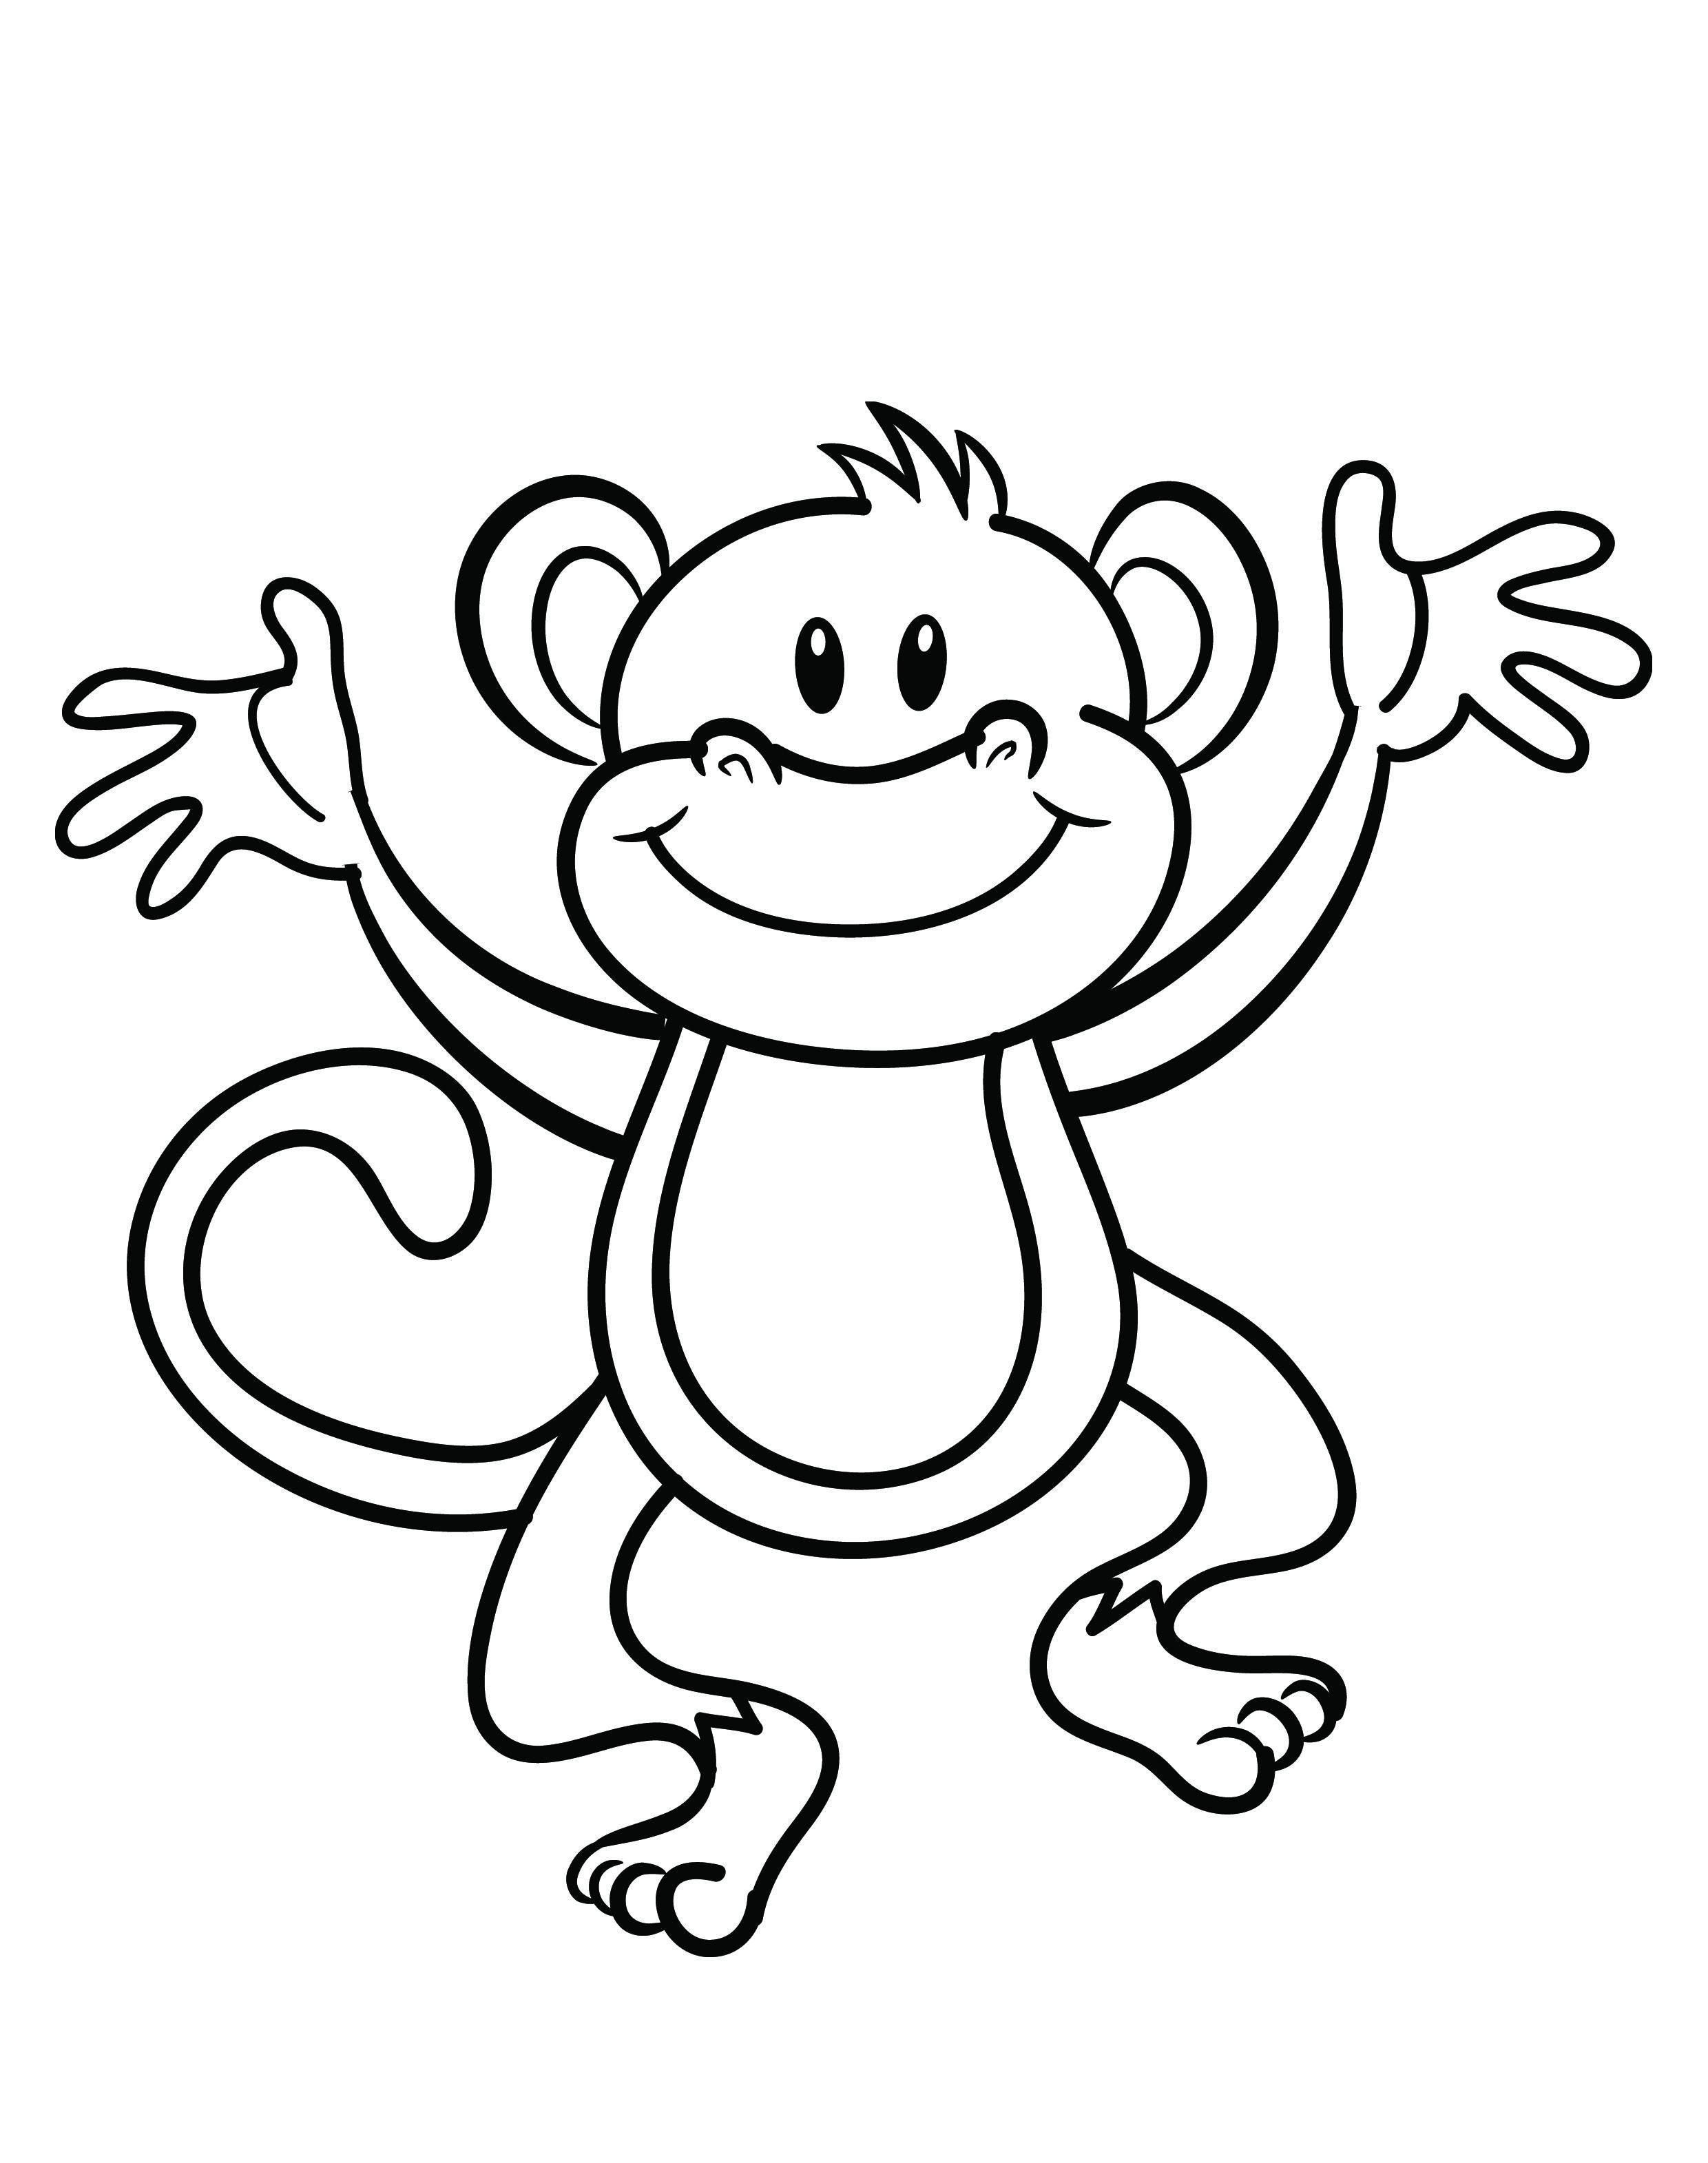 It's just a picture of Crafty Monkeys Coloring Pages